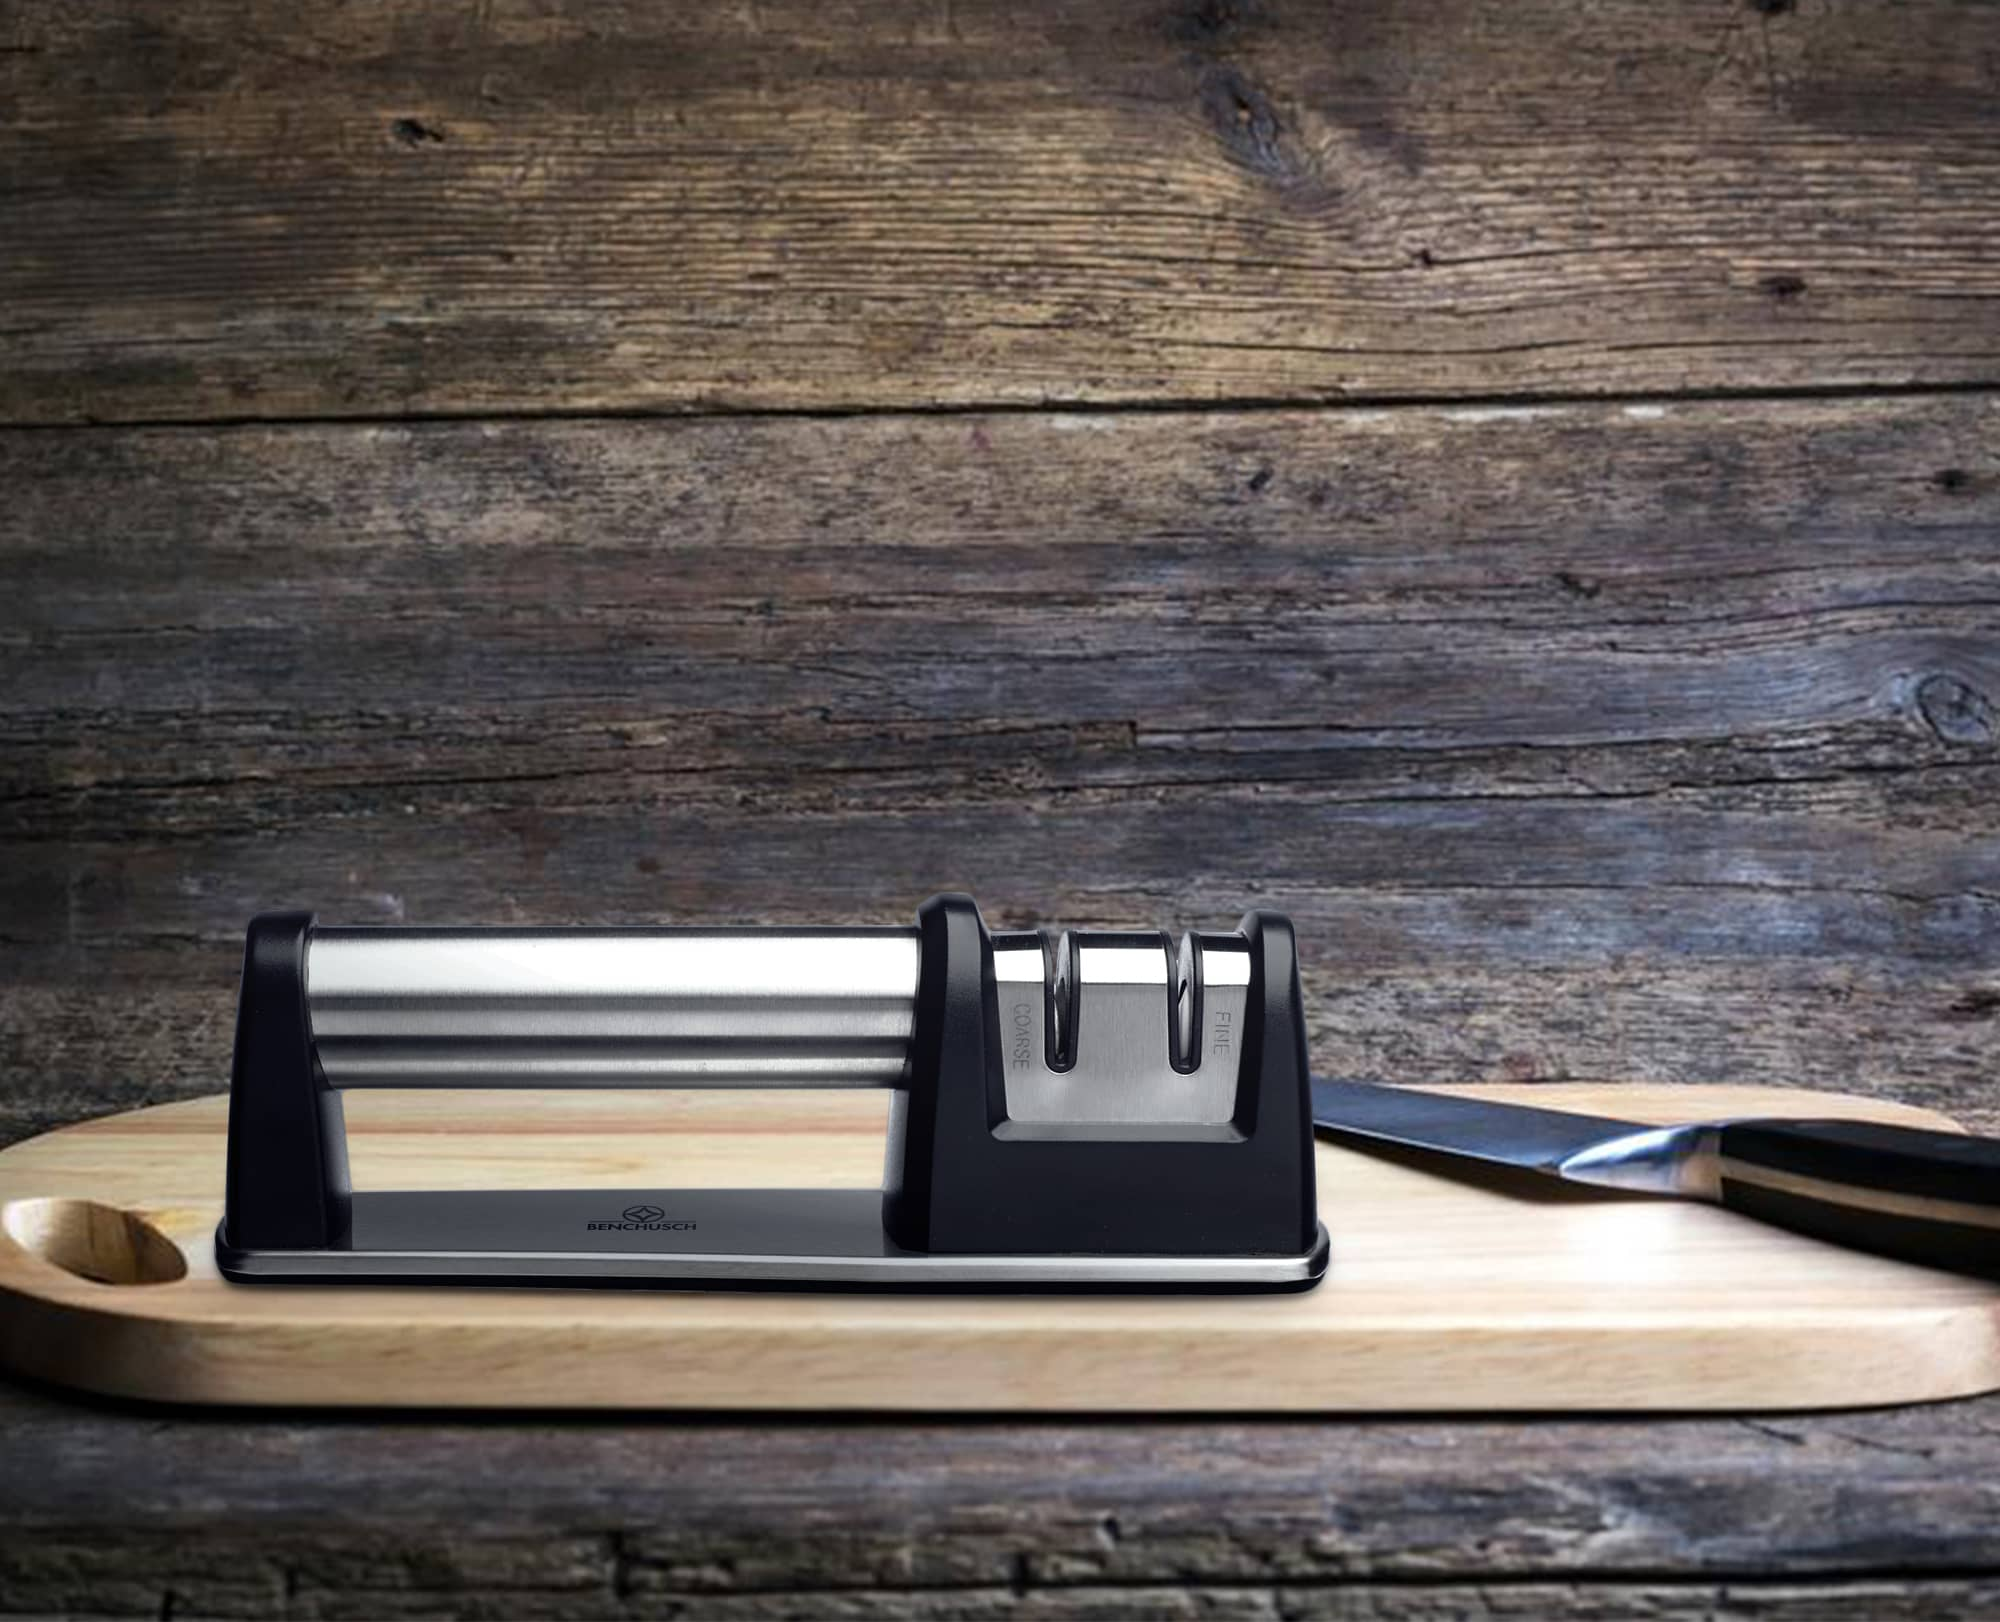 Benchusch Two-Stage Knife Sharpener on the chopping board with knife in the dark wood background